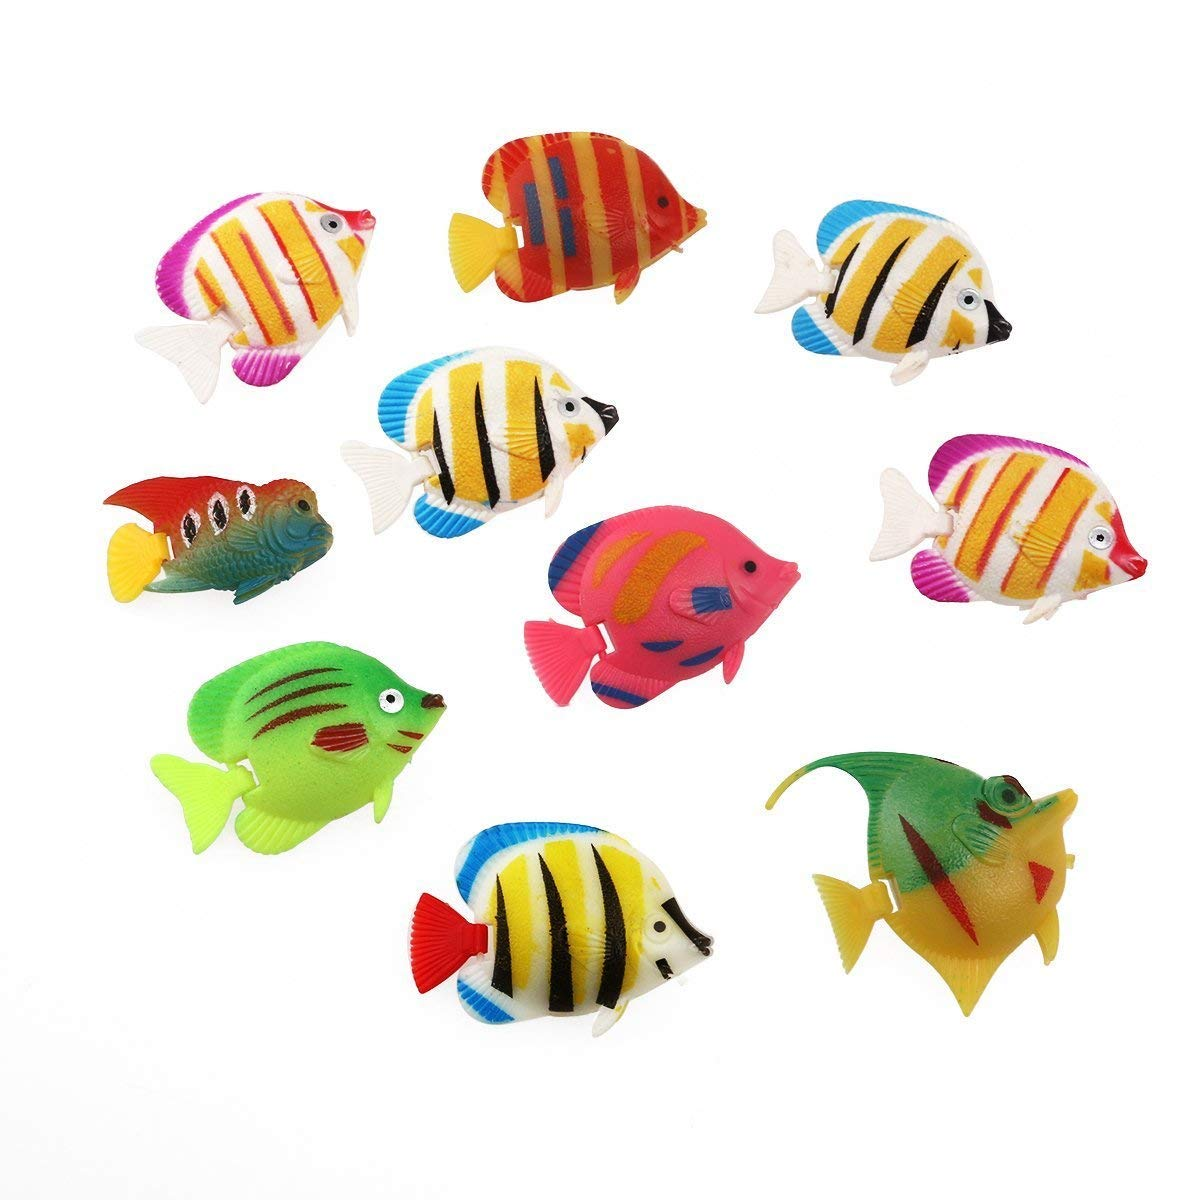 Keyi le 10 pcsColorant Assortiment En Plastique Artificielle Bulle Lampe Aquarium Poissons Tropicaux